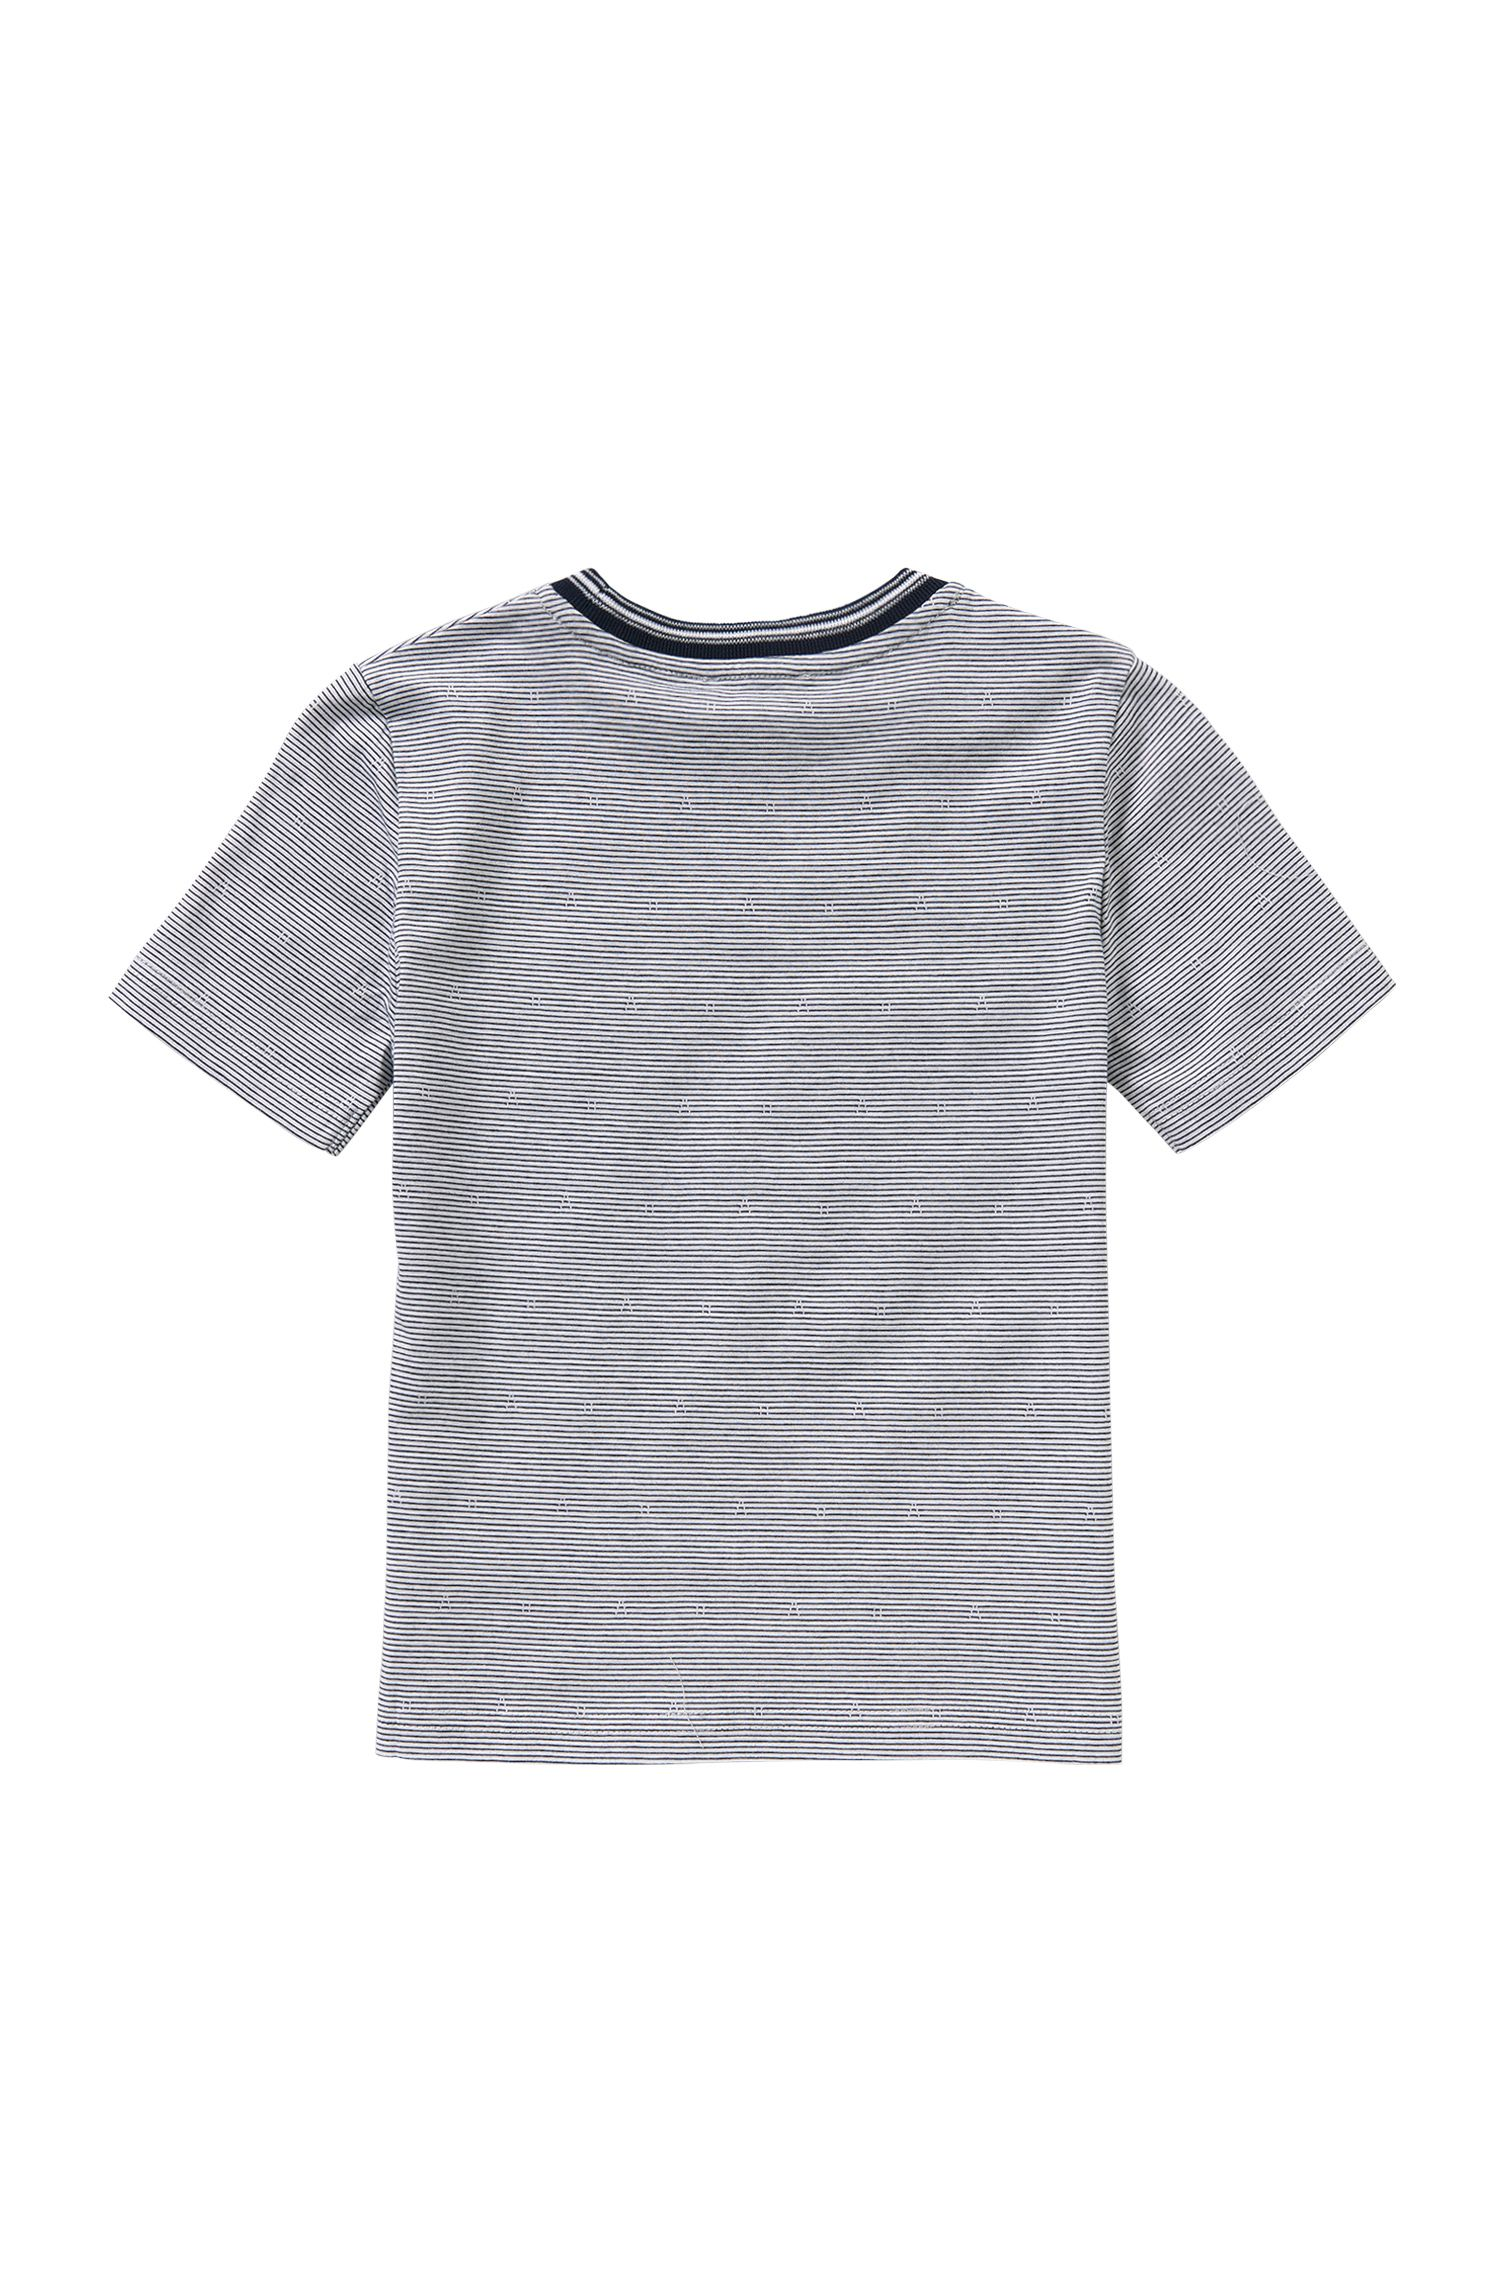 Striped kids' t-shirt in cotton: 'J25933'